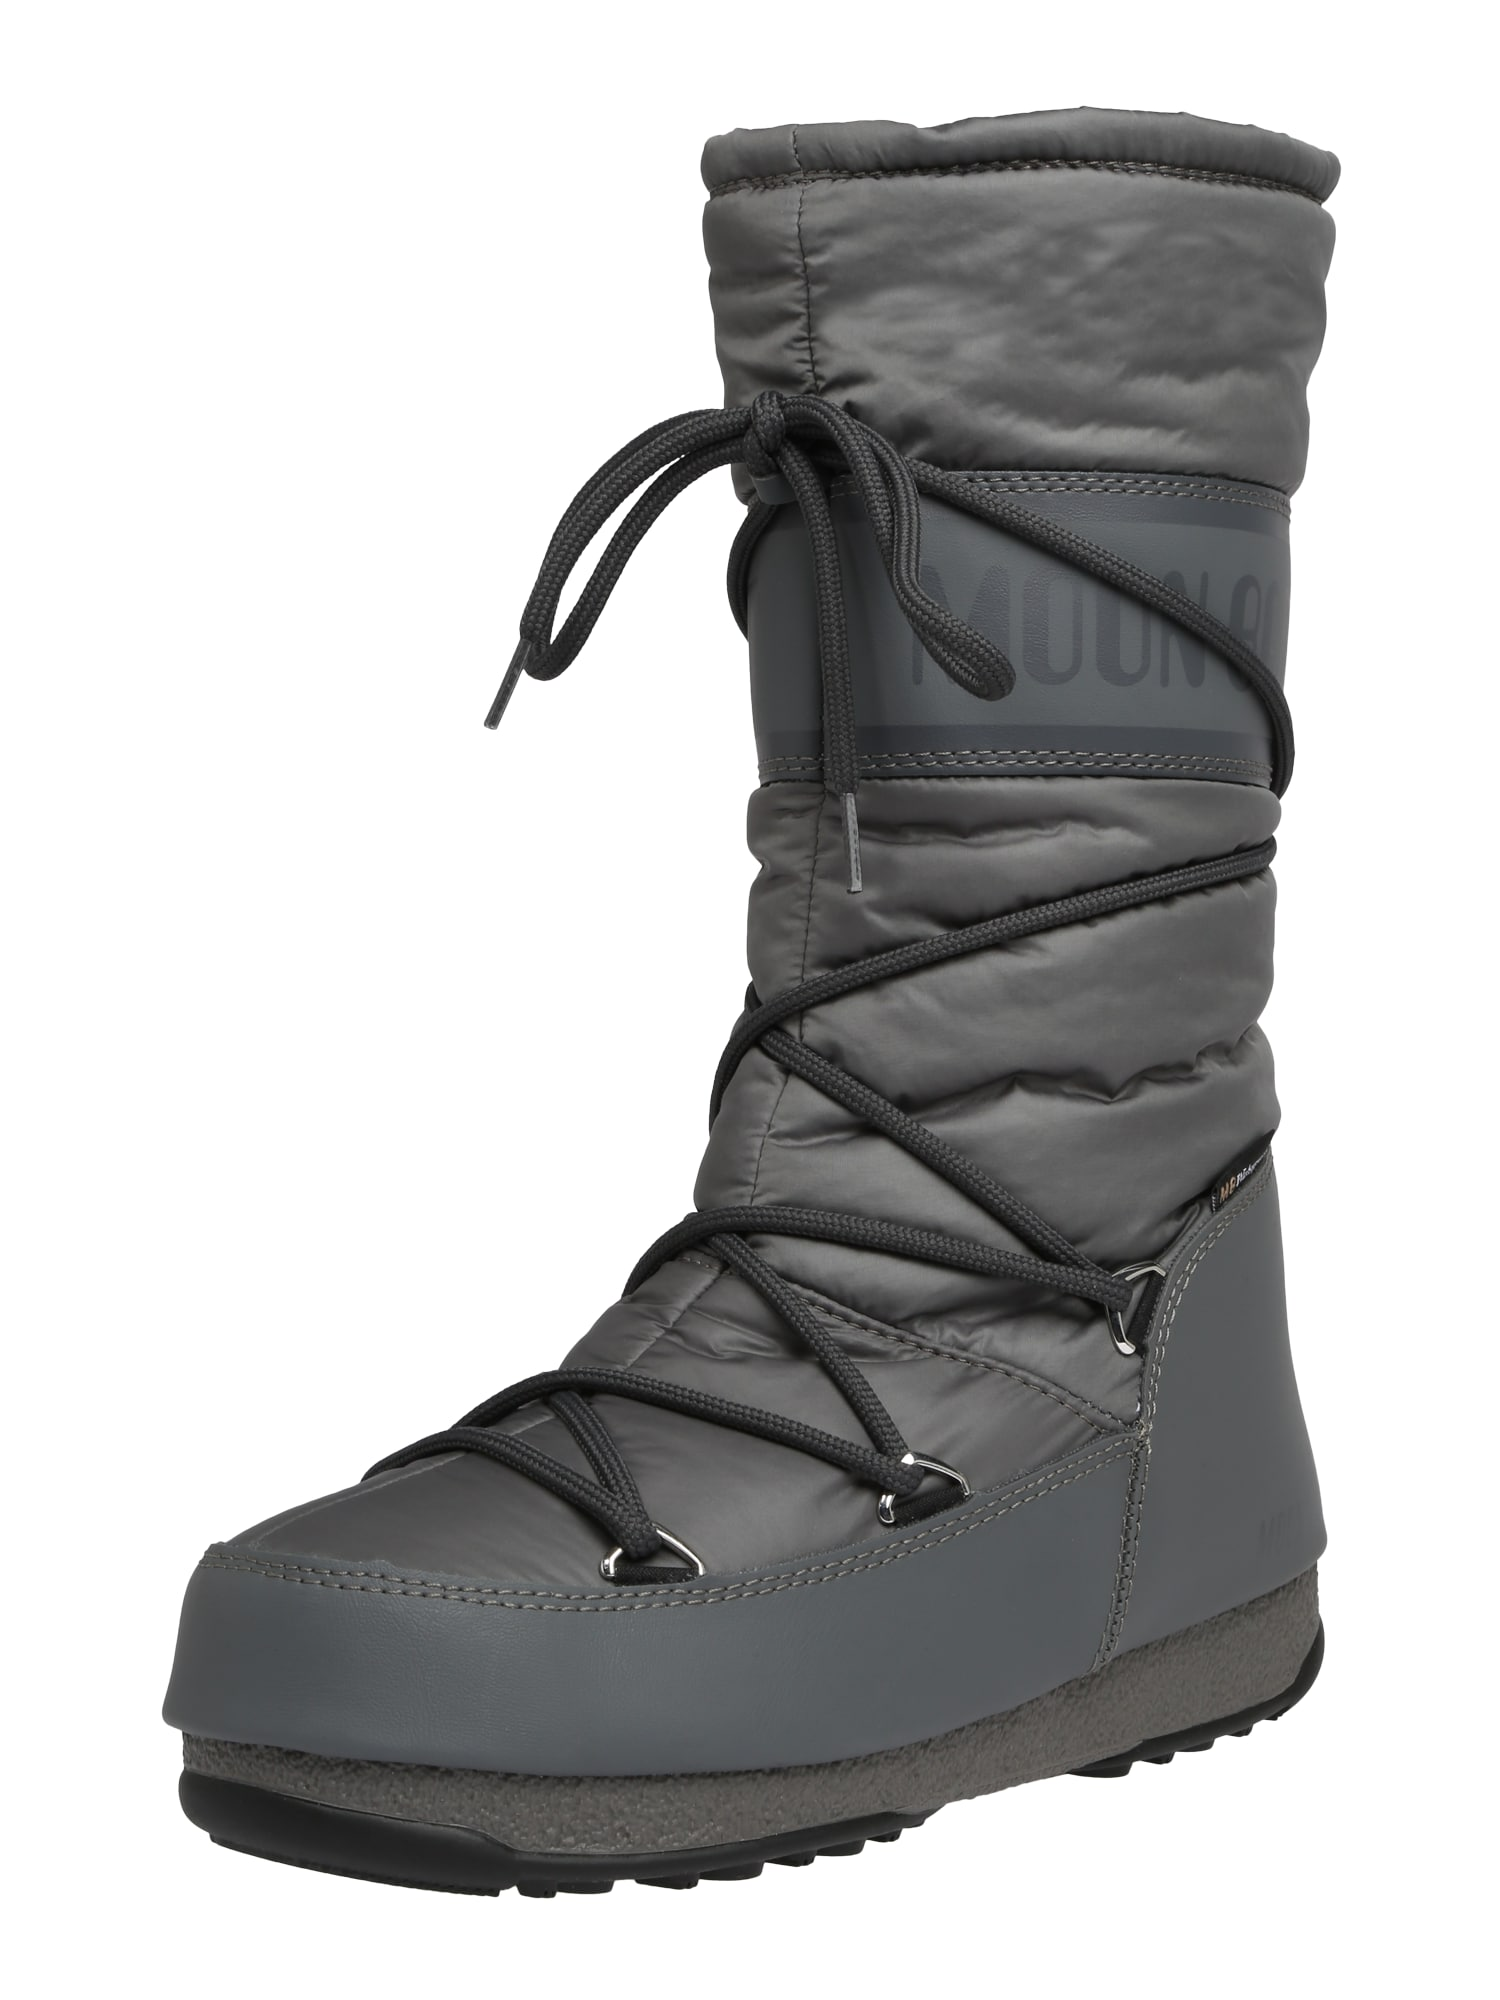 Snowboots 'MOON BOOT HIGH NYLON WP' | Schuhe > Boots > Snowboots | moon boot